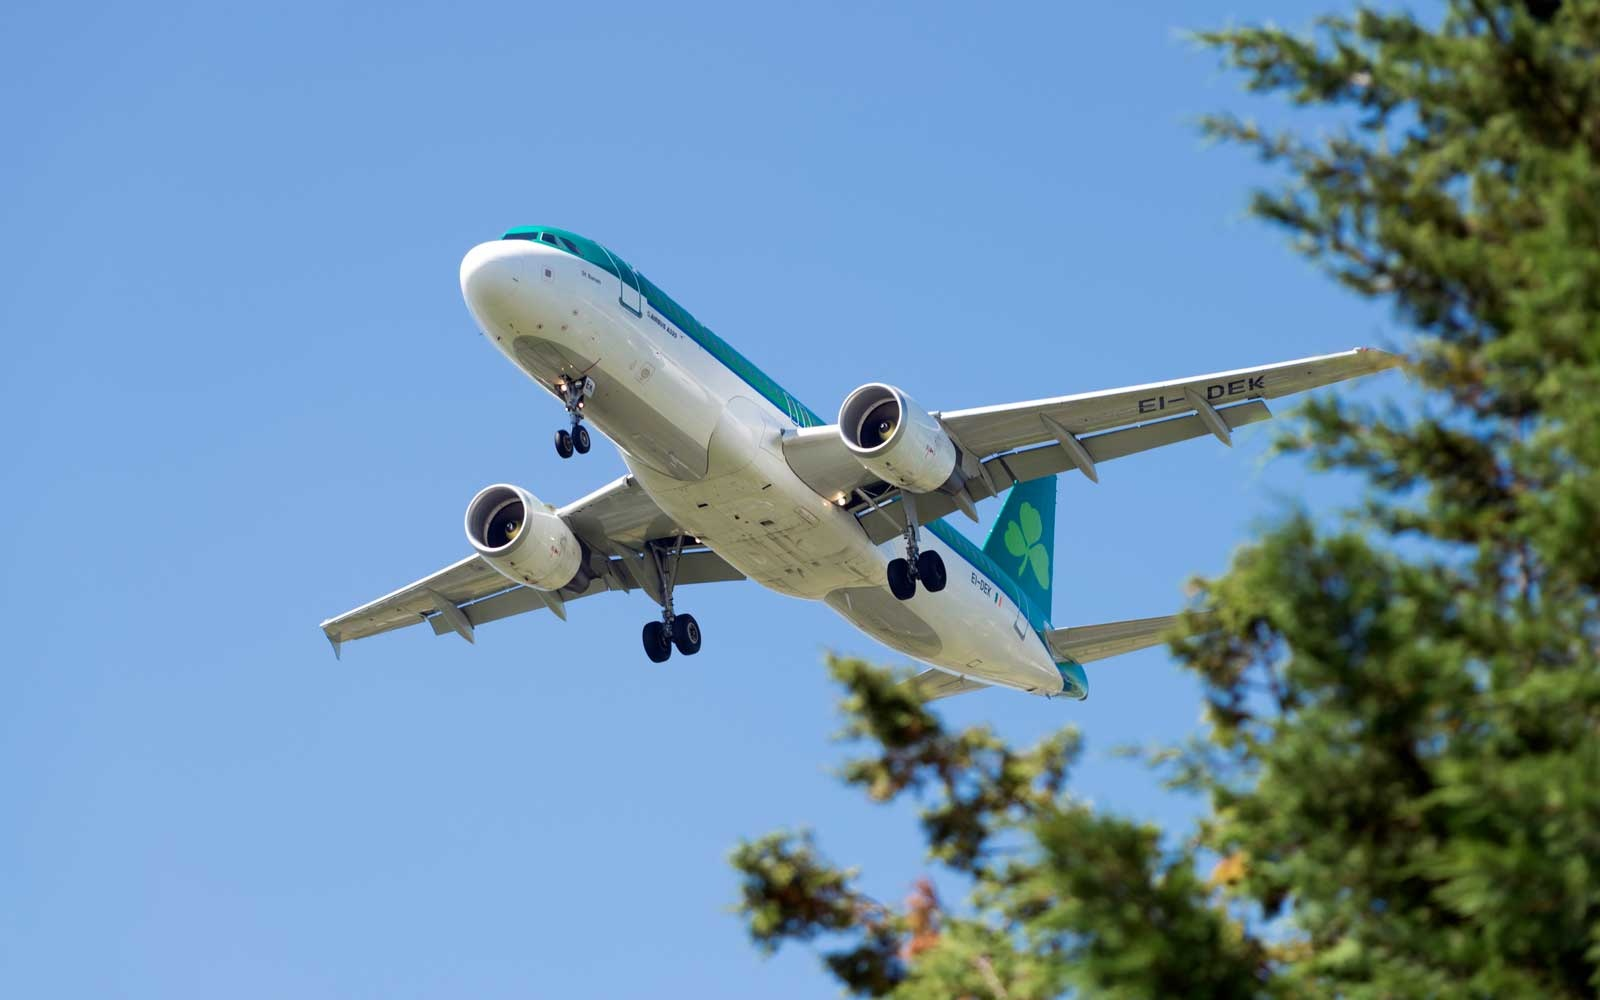 You can fly to Ireland for $399 round-trip with Aer Lingus's latest sale